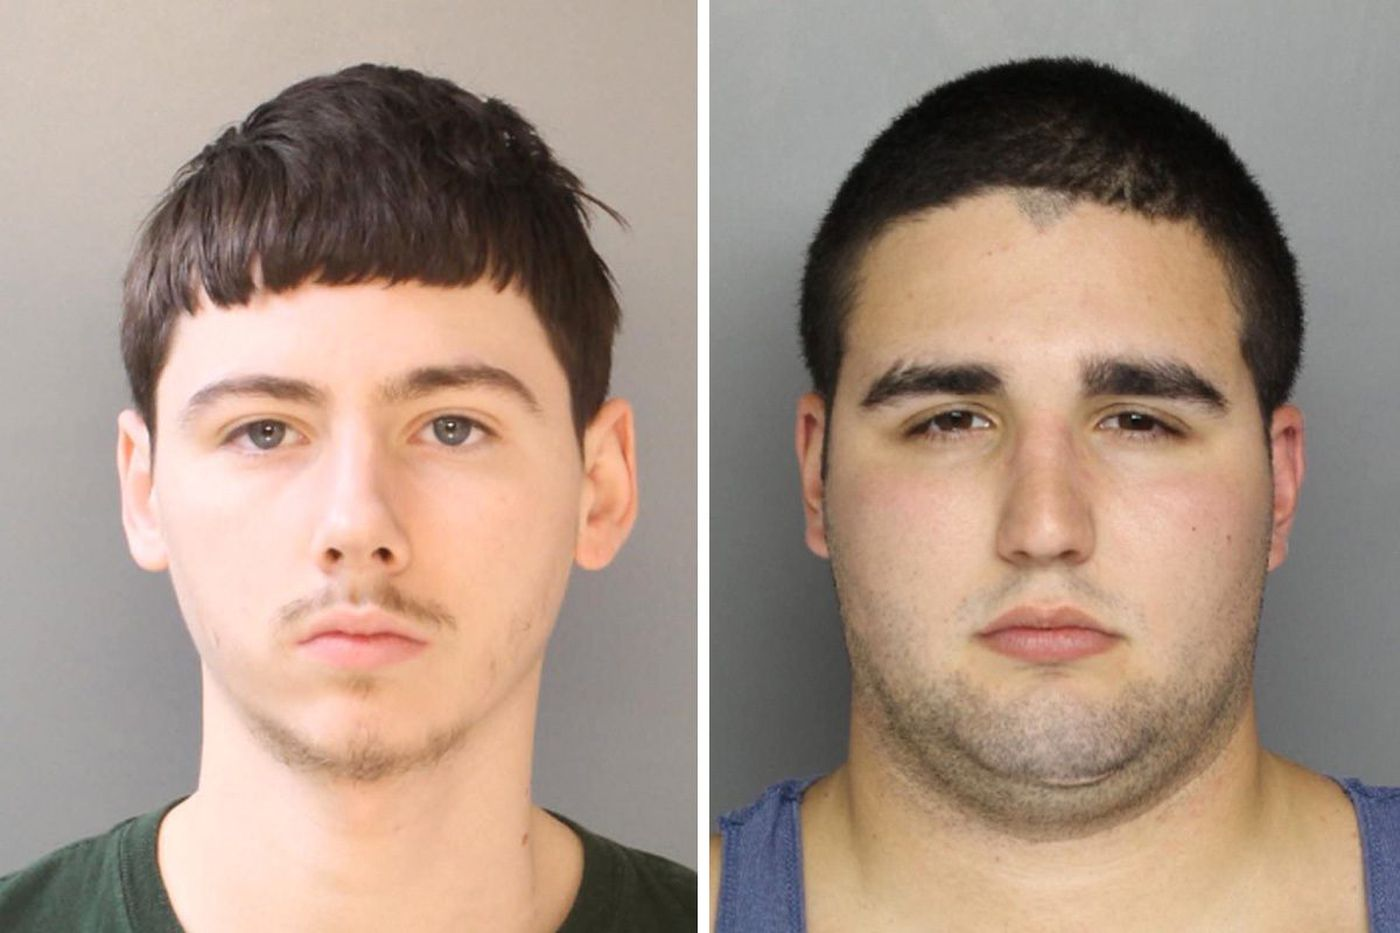 Will Cosmo DiNardo and Sean Kratz face death penalty?